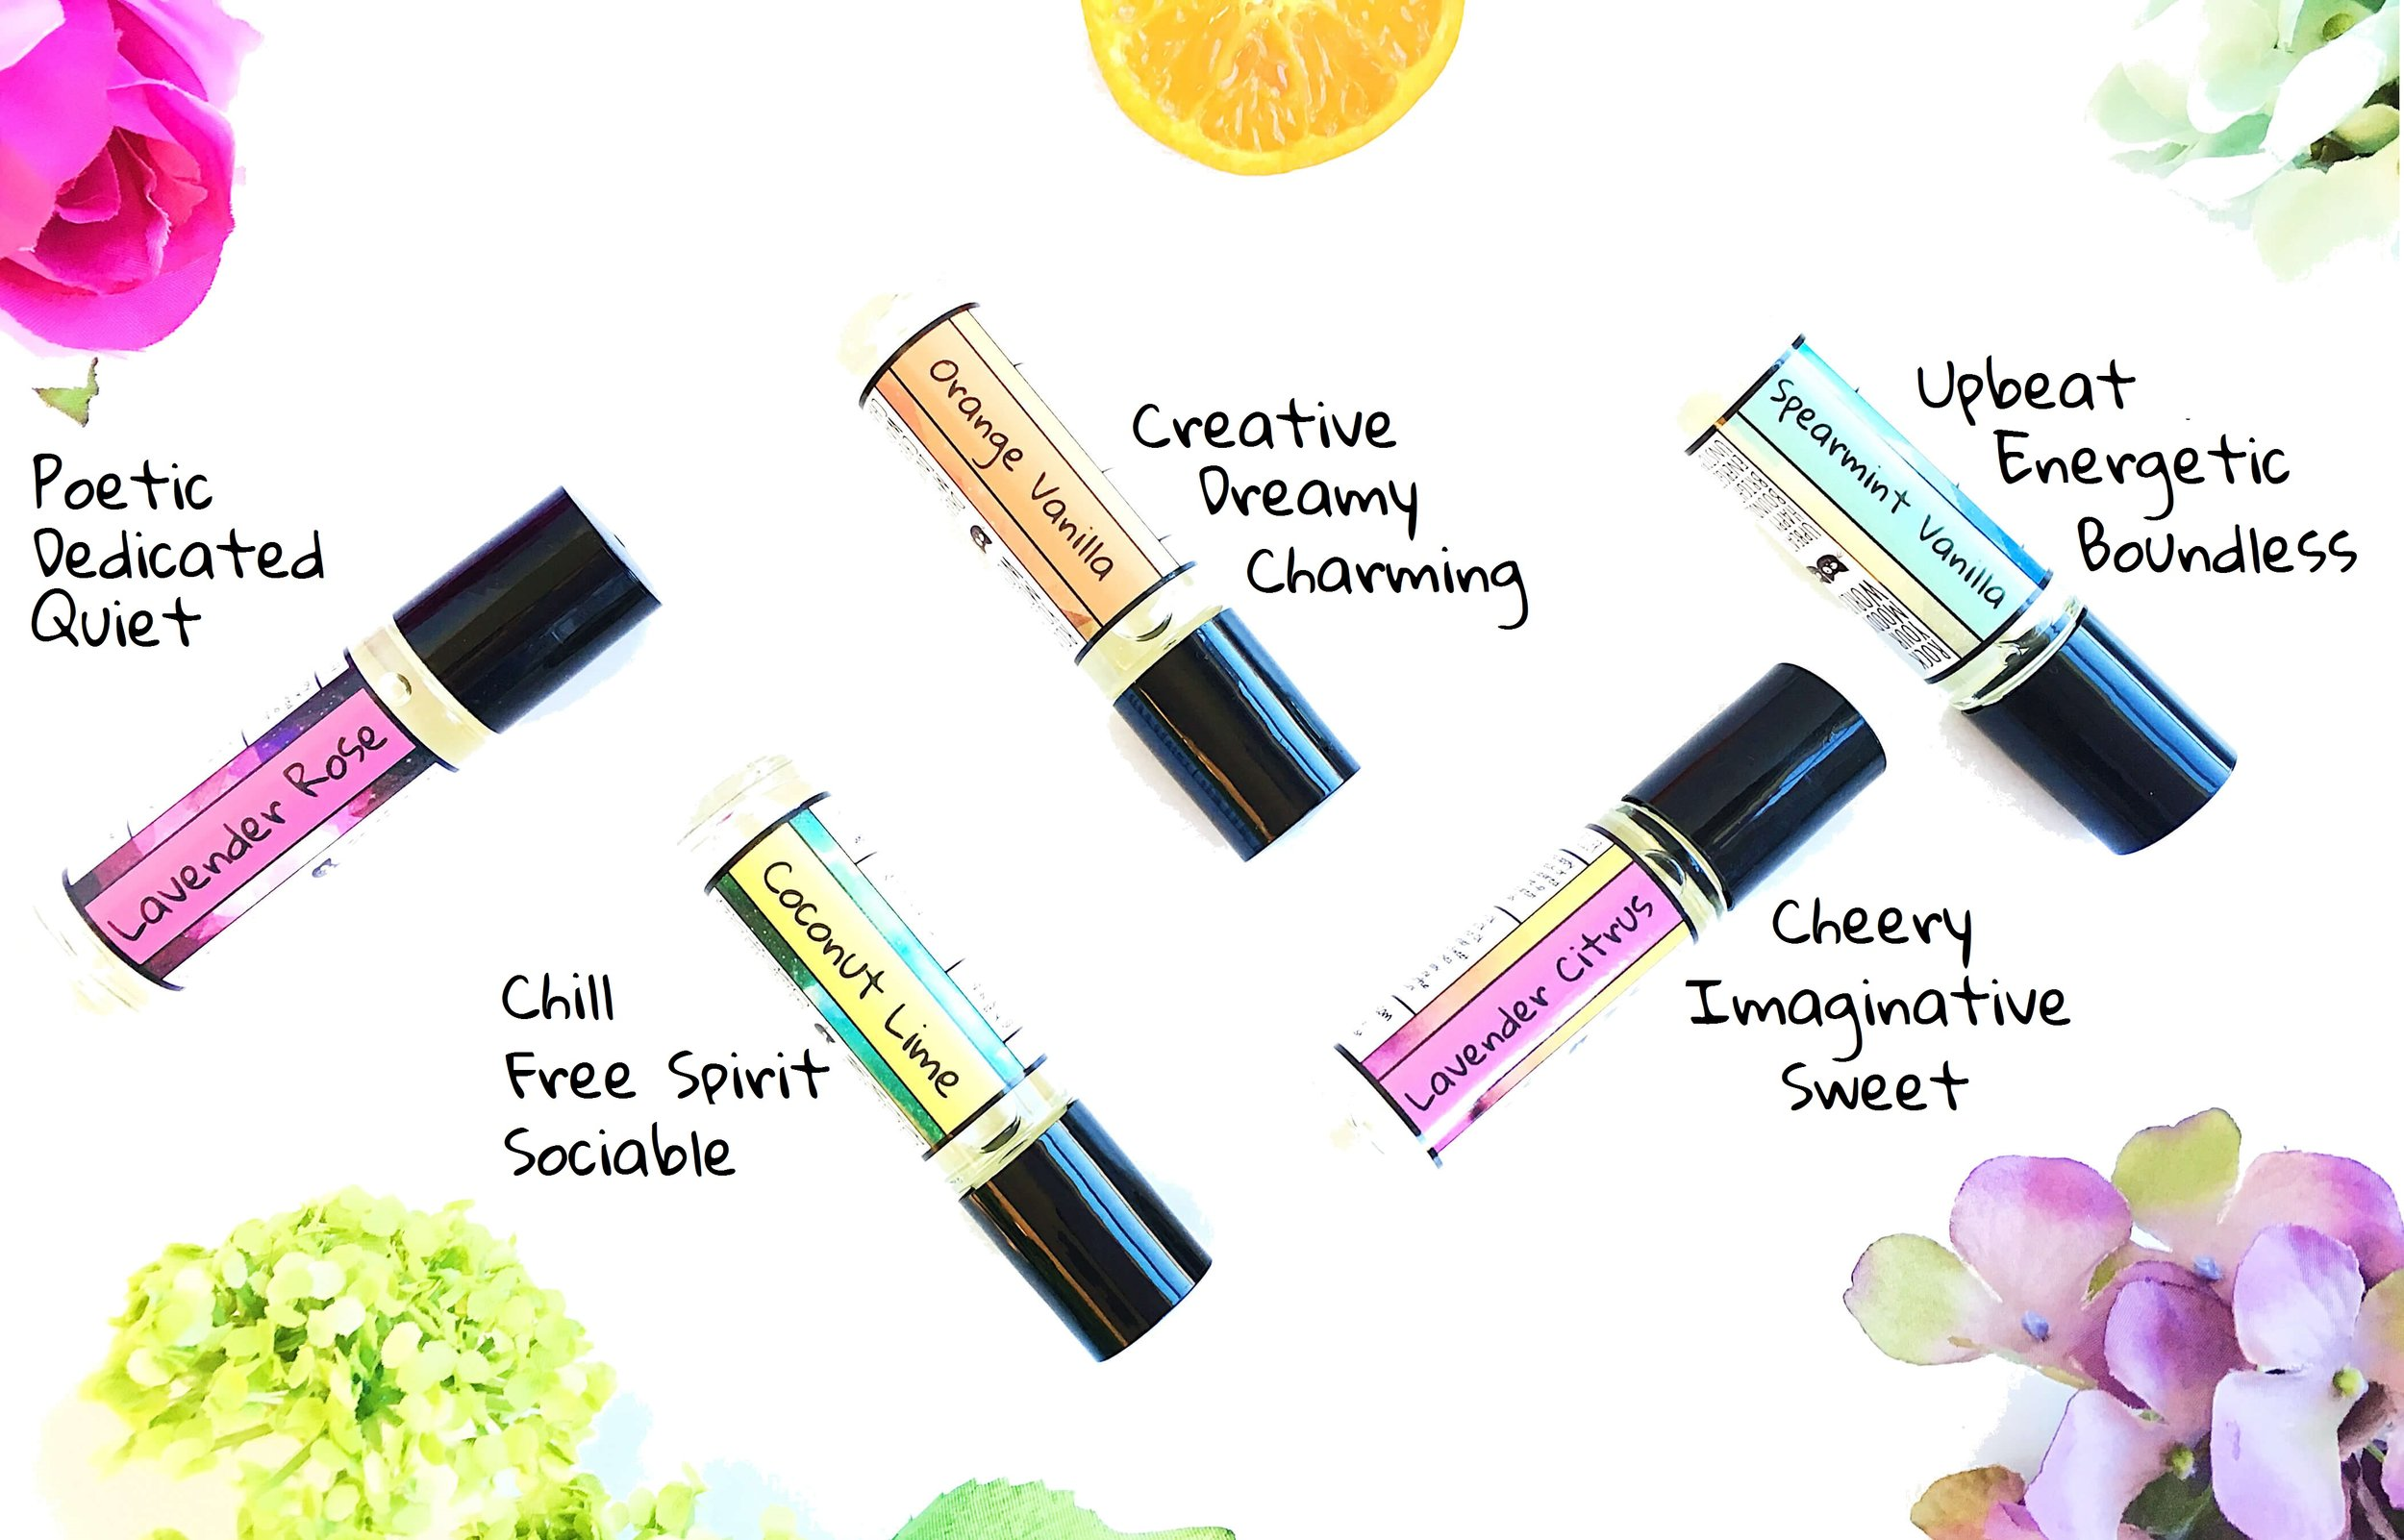 What scent are you? - Read More...